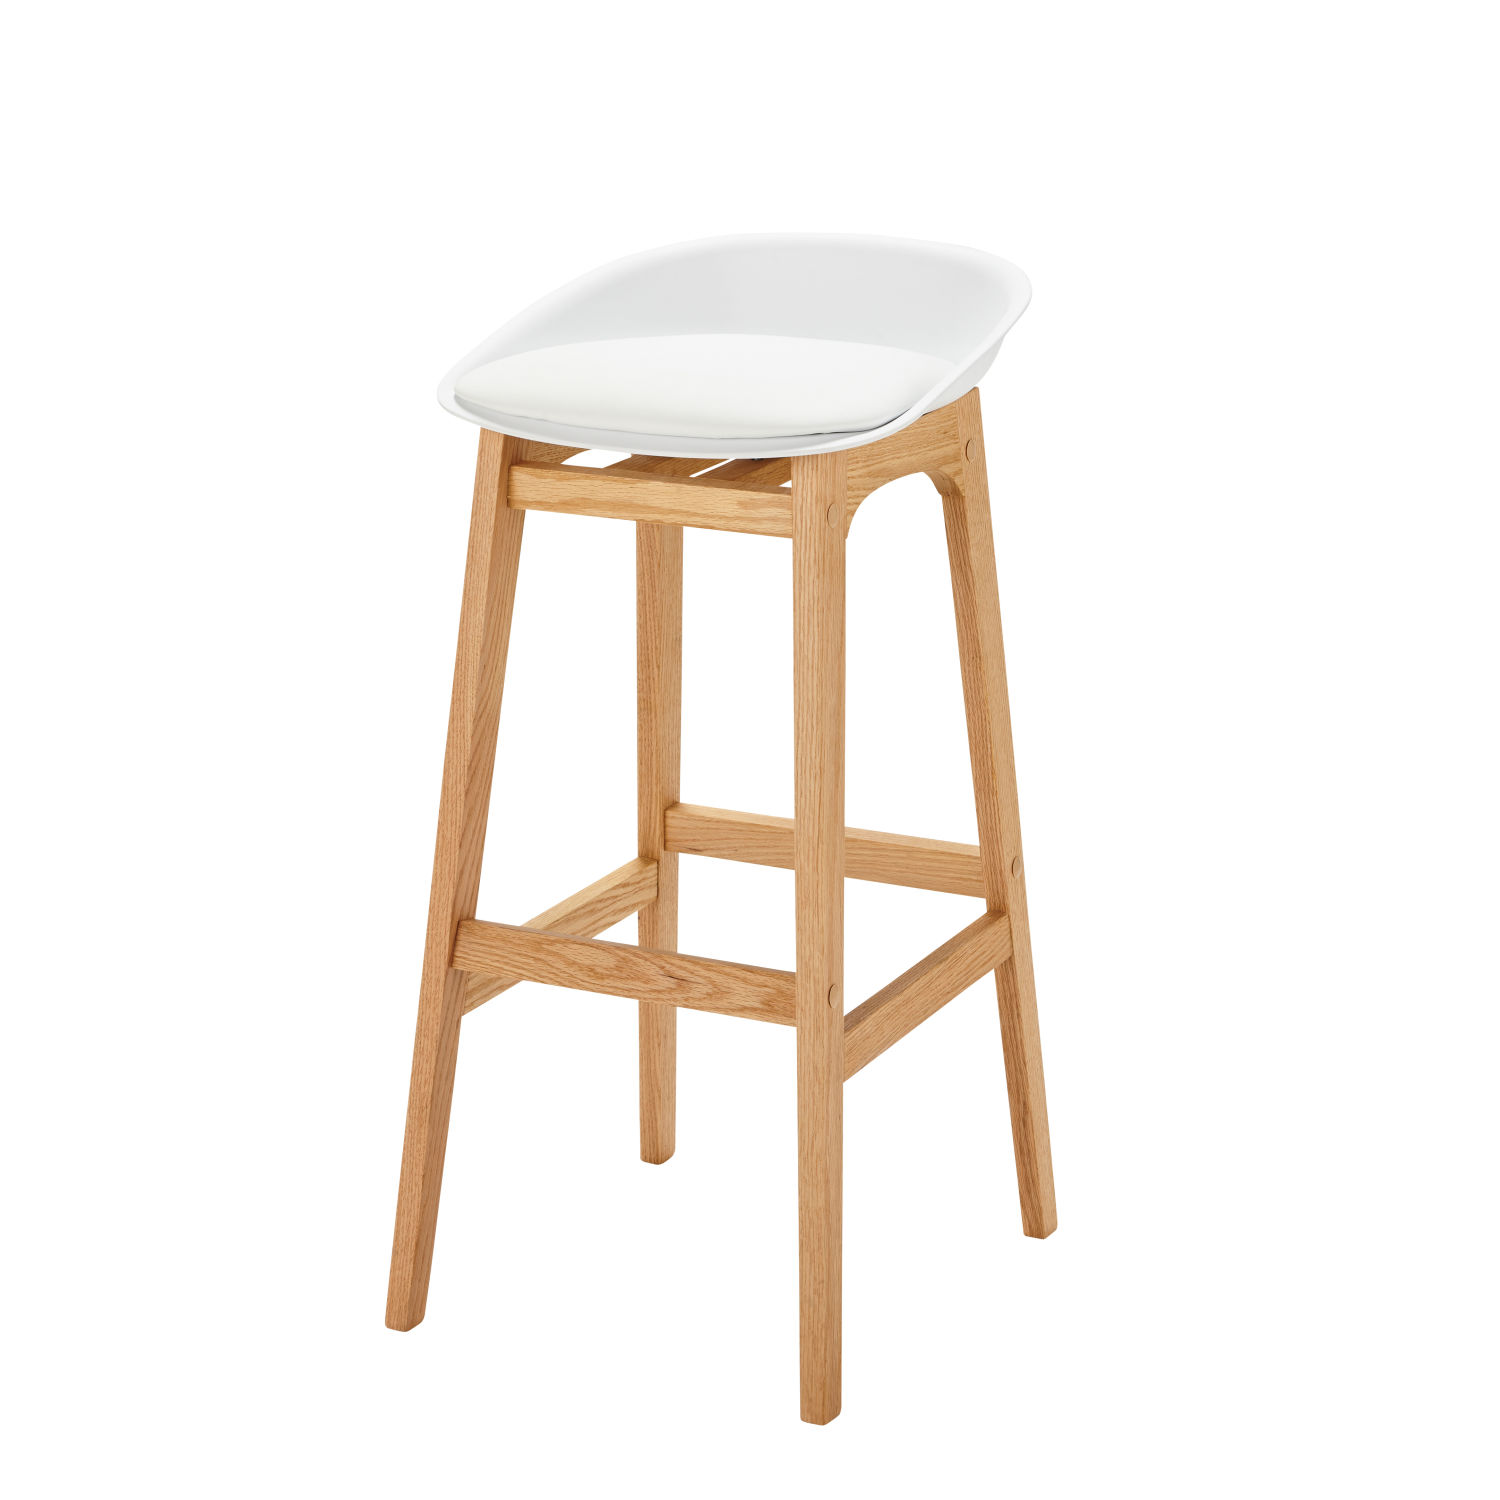 tabouret de bar style scandinave blanc et ch ne massif h88 maisons du monde. Black Bedroom Furniture Sets. Home Design Ideas